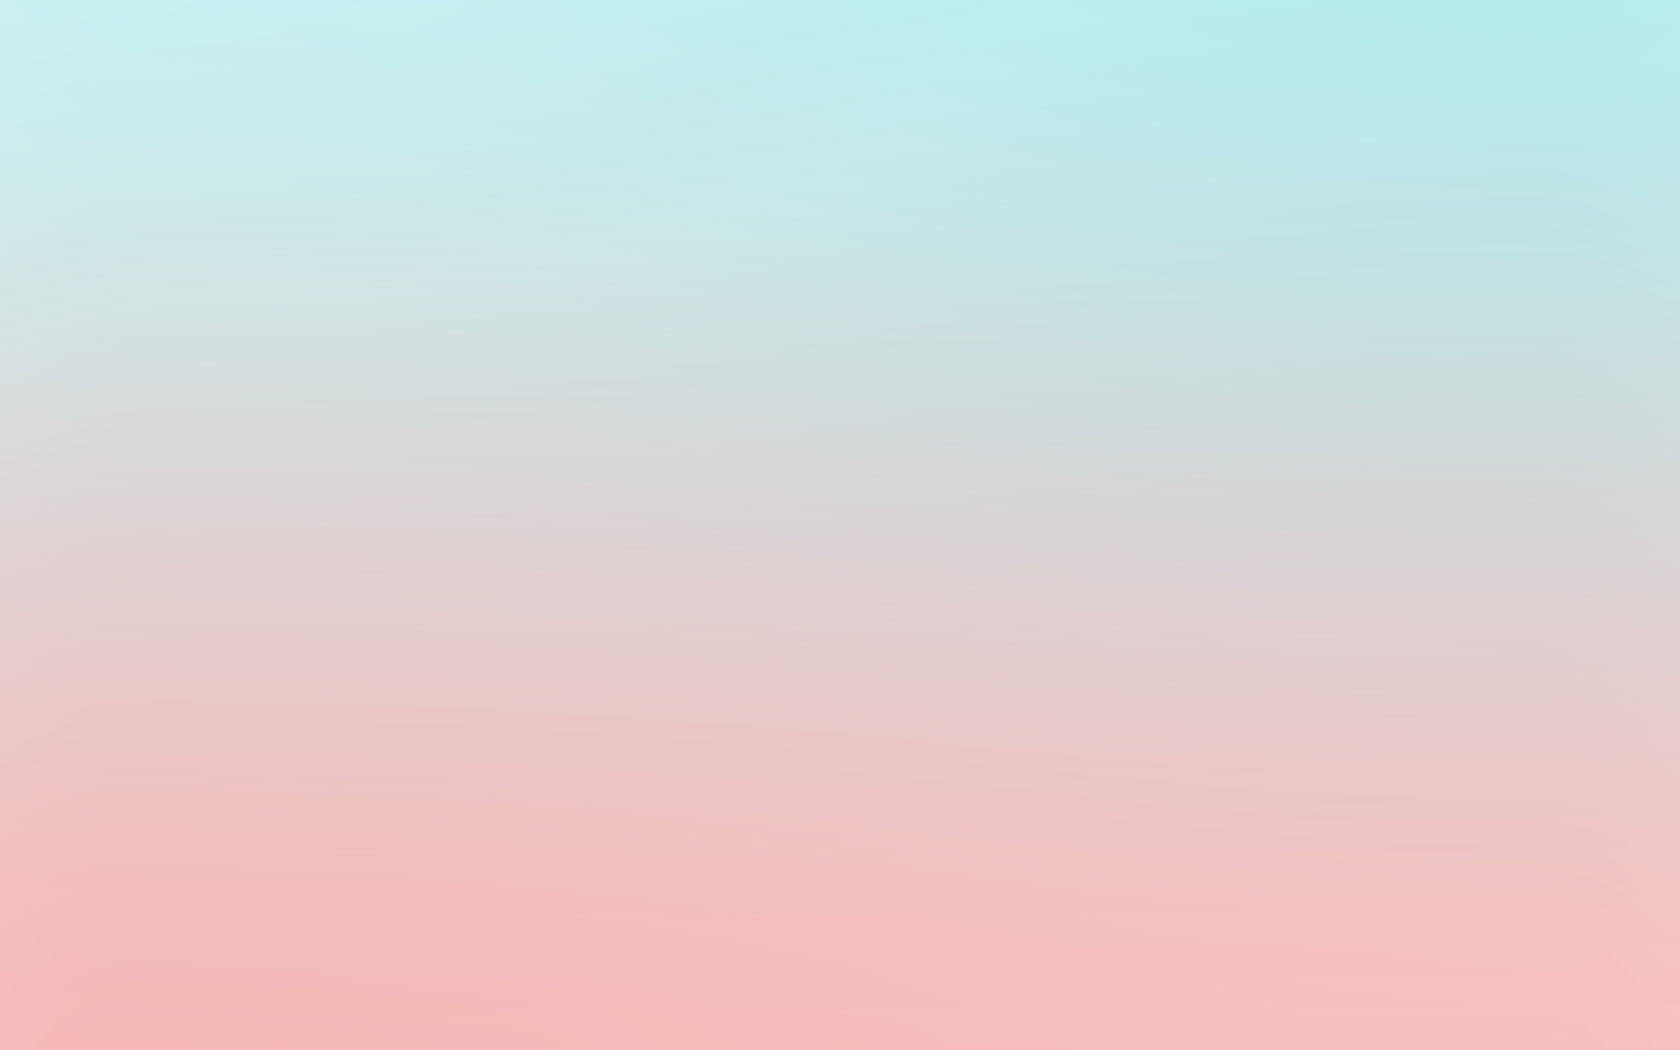 Spring Anime Wallpaper Sm40 Blue Red Soft Pastel Blur Gradation Wallpaper